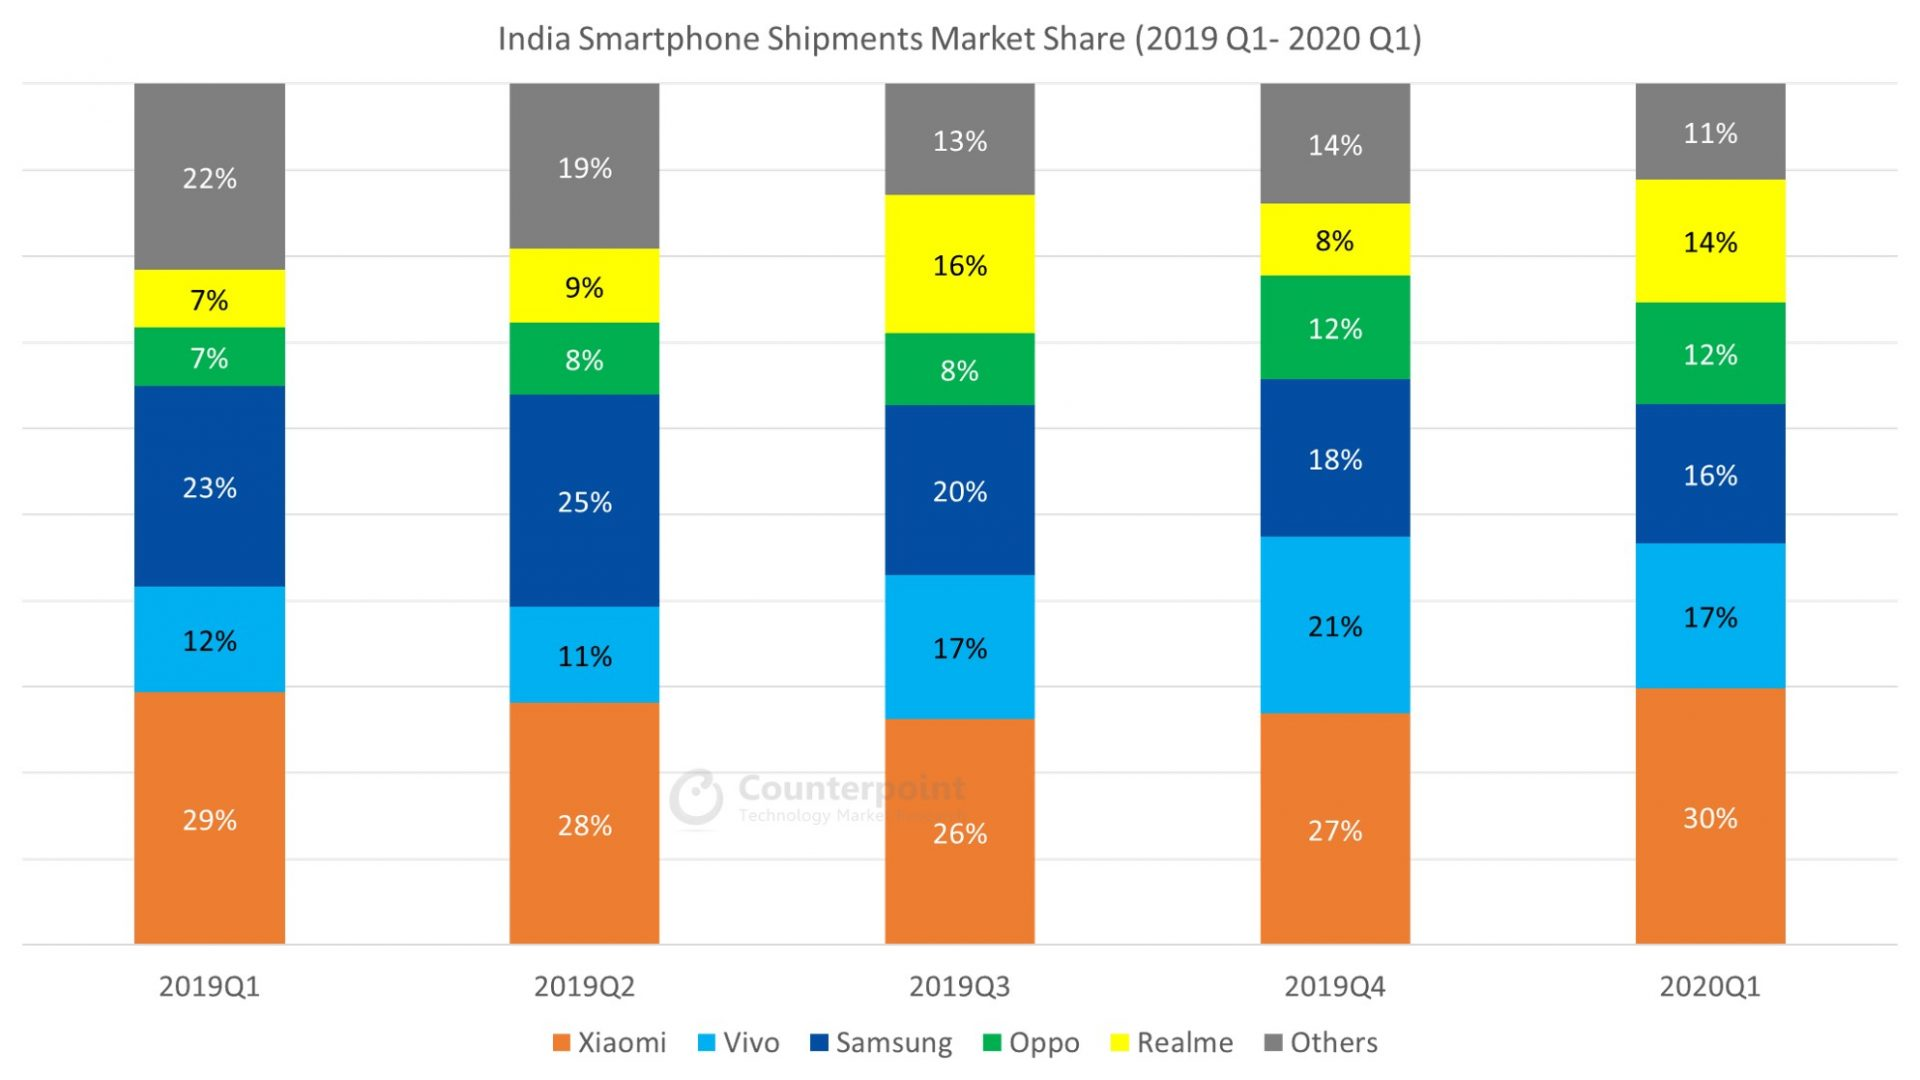 Counterpoint India Smartphone Shipments Market Share Q1 2020